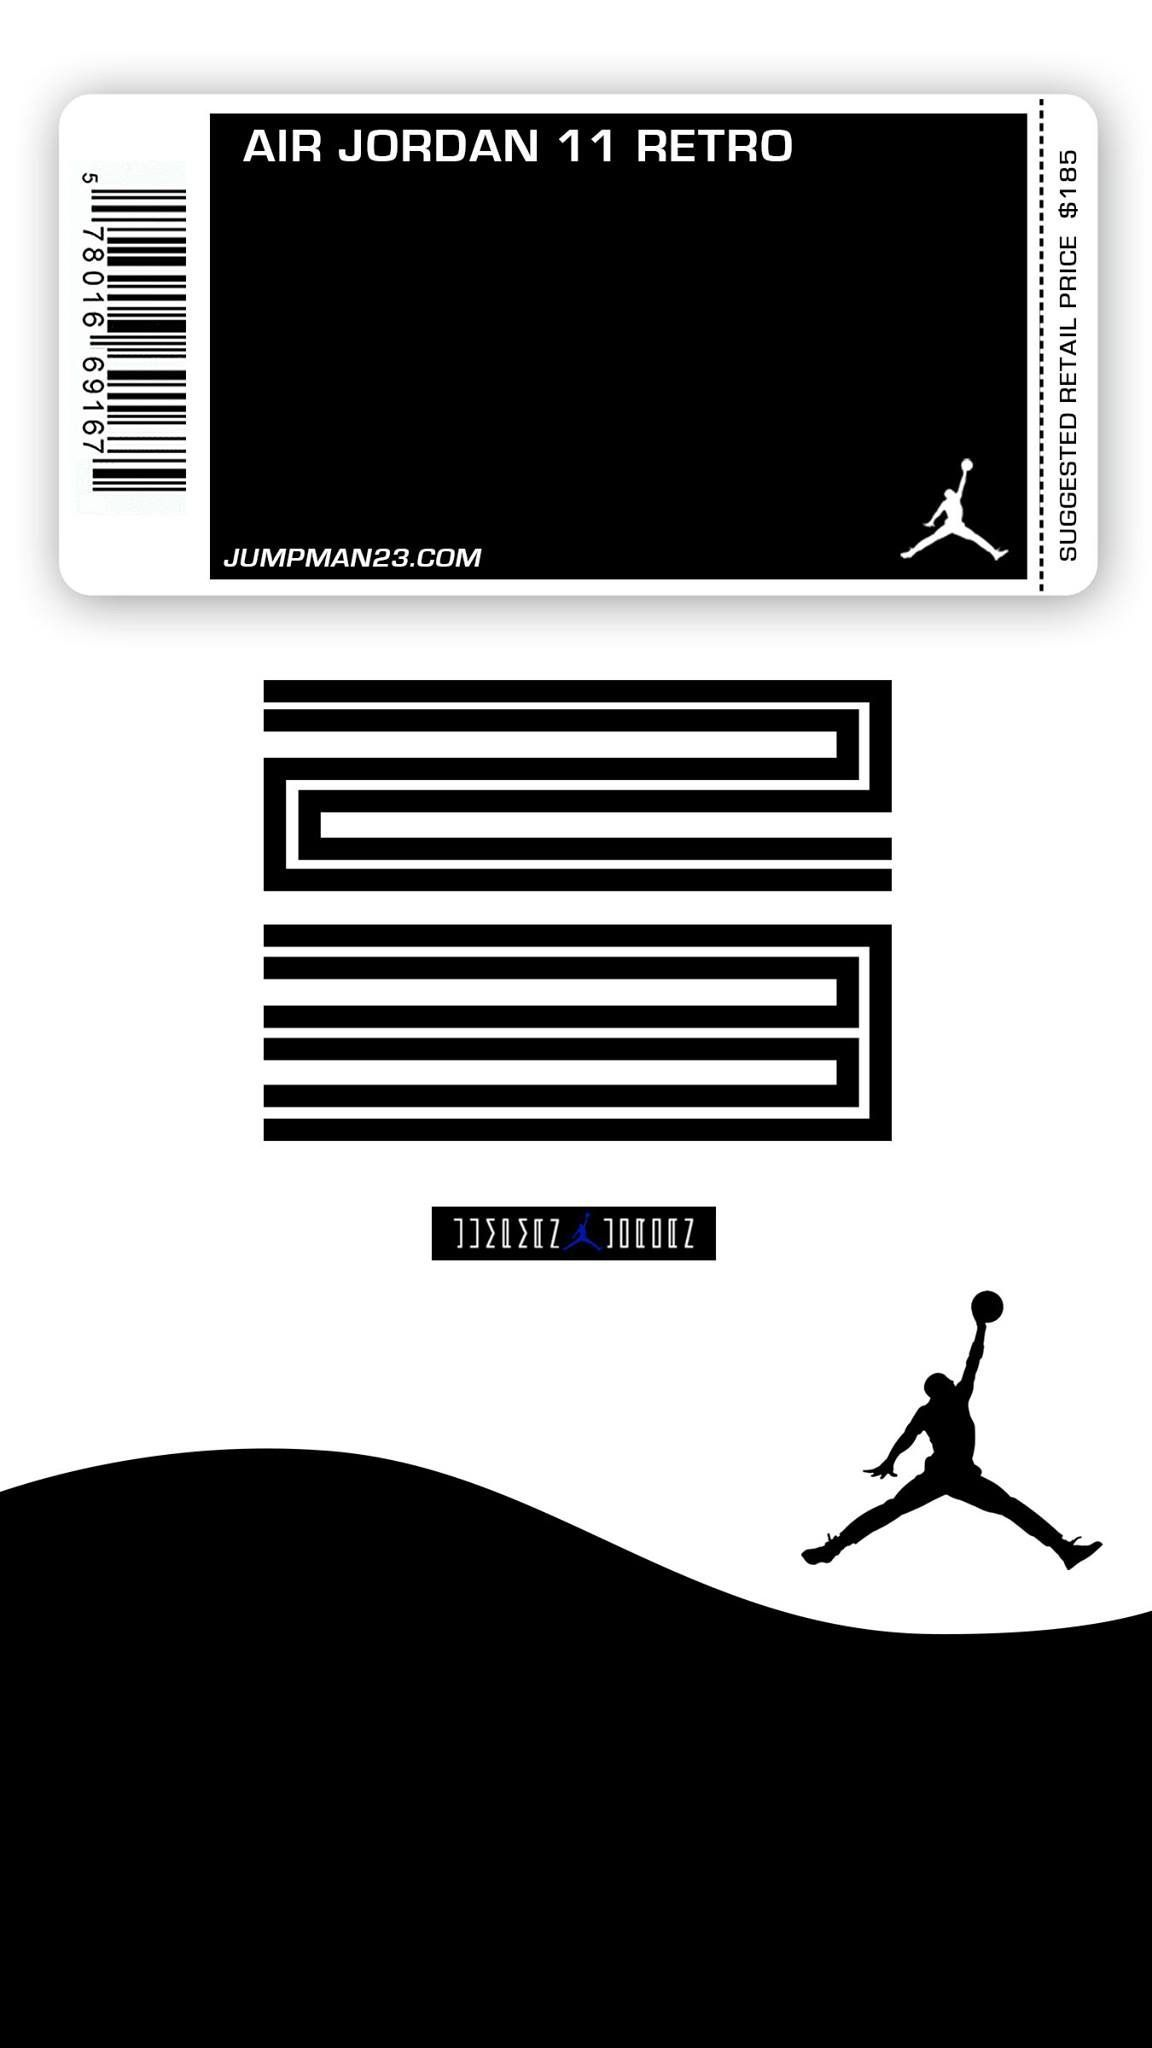 Shoesusa On Twitter Nike Wallpaper Jordan Logo Wallpaper Hype Wallpaper